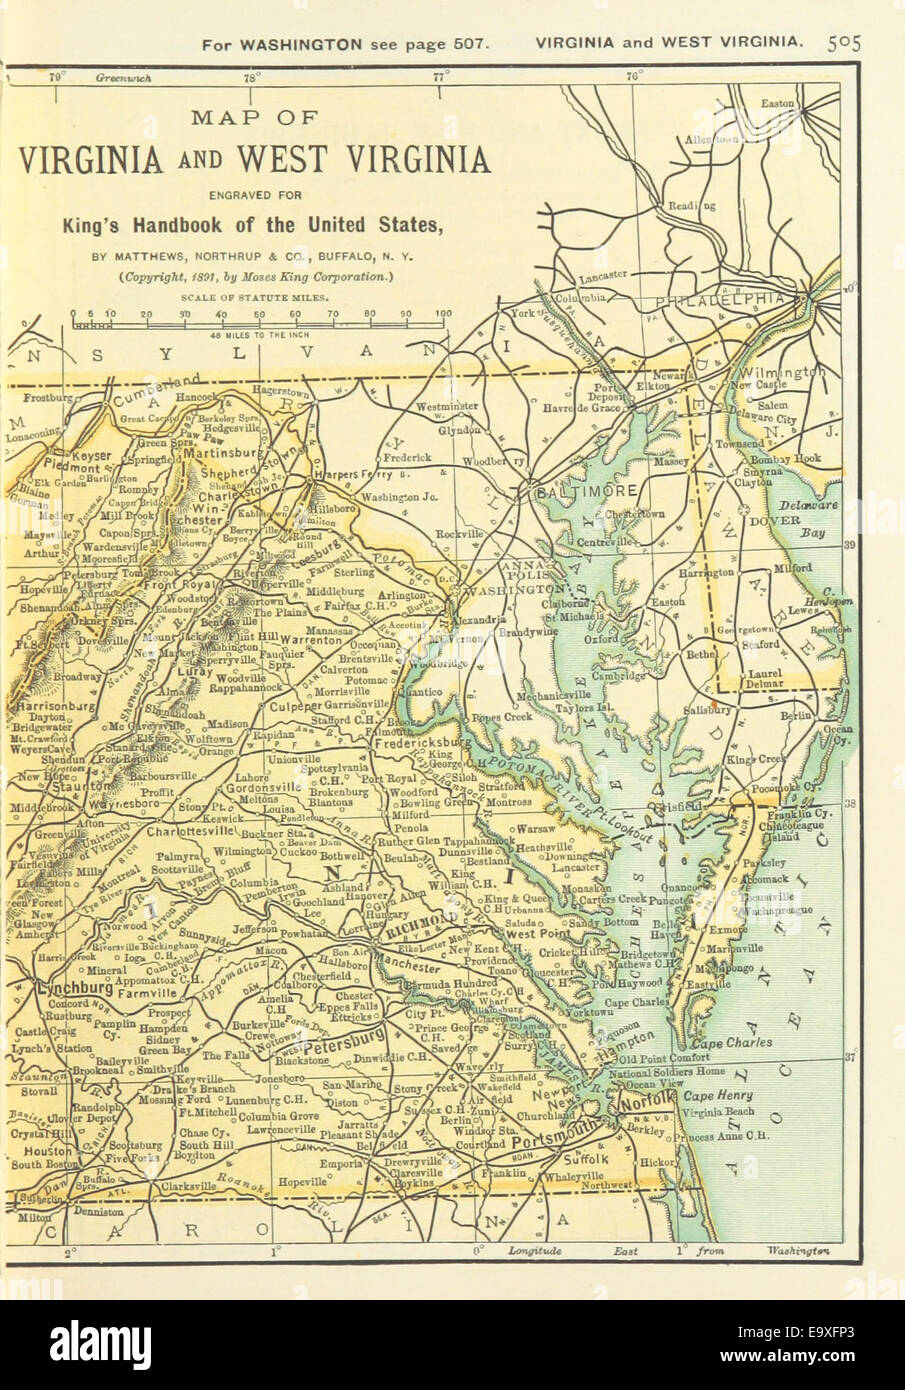 US-MAPS(1891) p507 - MAP OF VIRGINIA AND WEST VIRGINIA (r ...